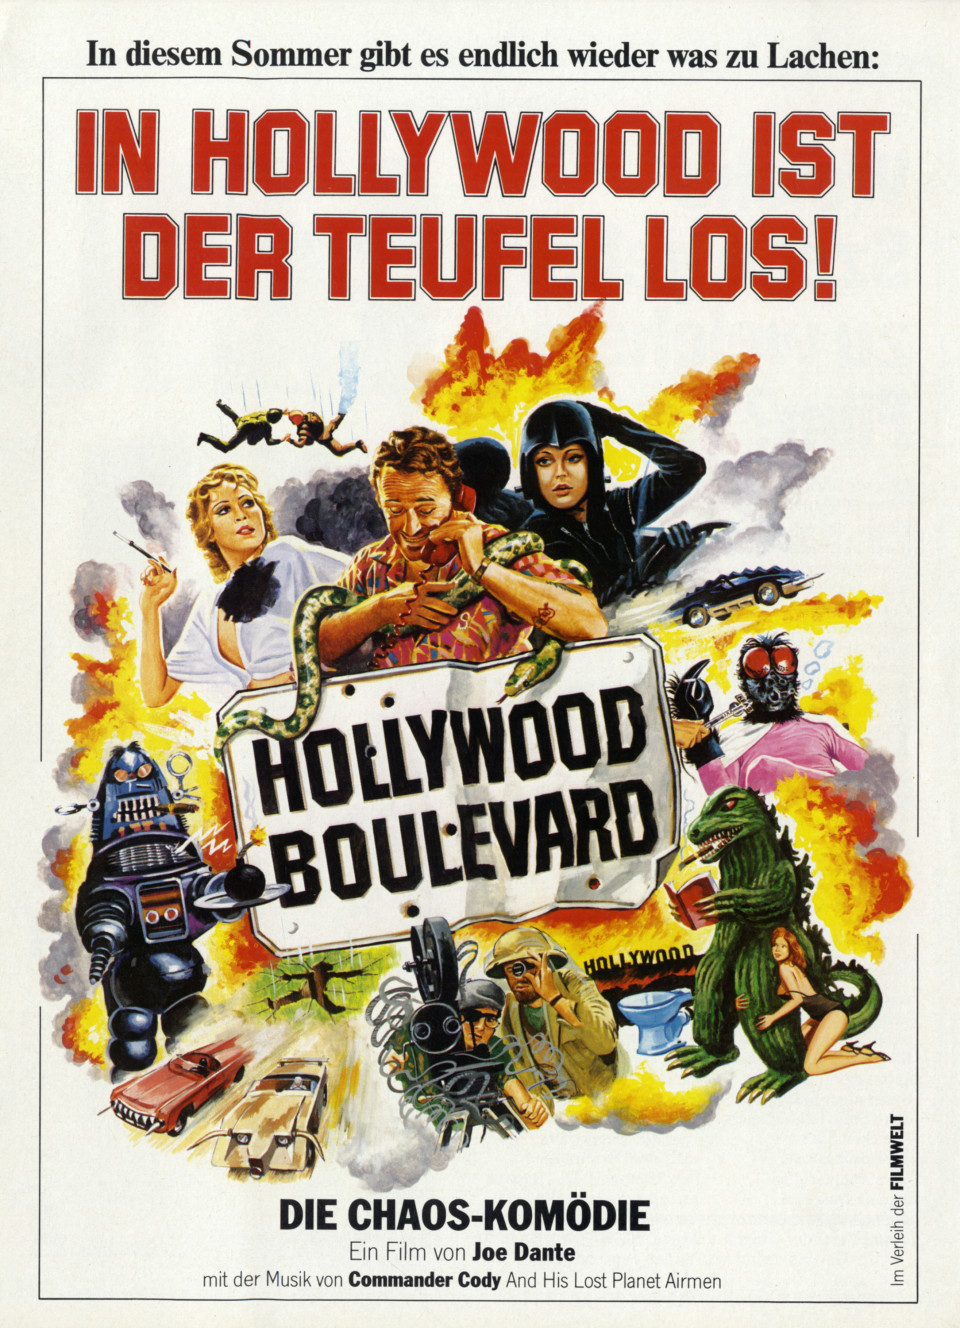 004-1977-Hollywood Boulevard-German-A0-CM